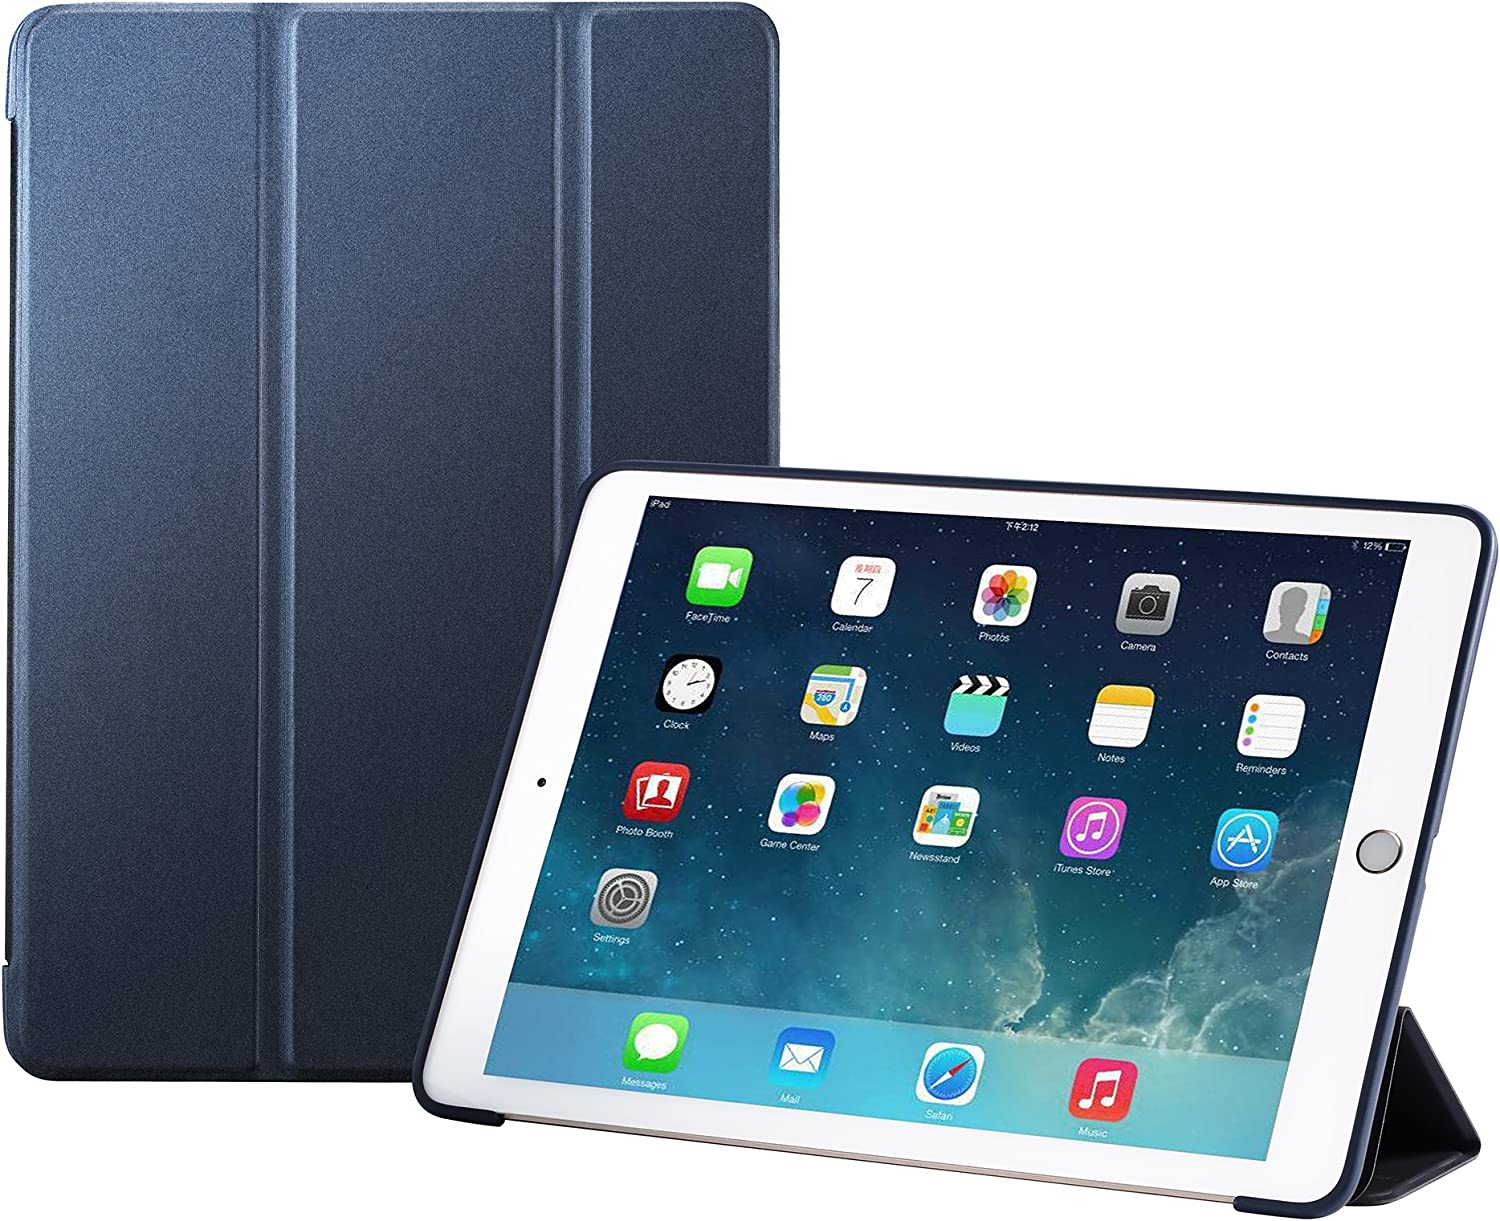 RUBAN Case Compatible with iPad (9.7-Inch, 2018/2017 Model) - Ultra Slim Lightweight Smart Shell Standing Cover with Auto Wake/Sleep Feature, Navy Blue